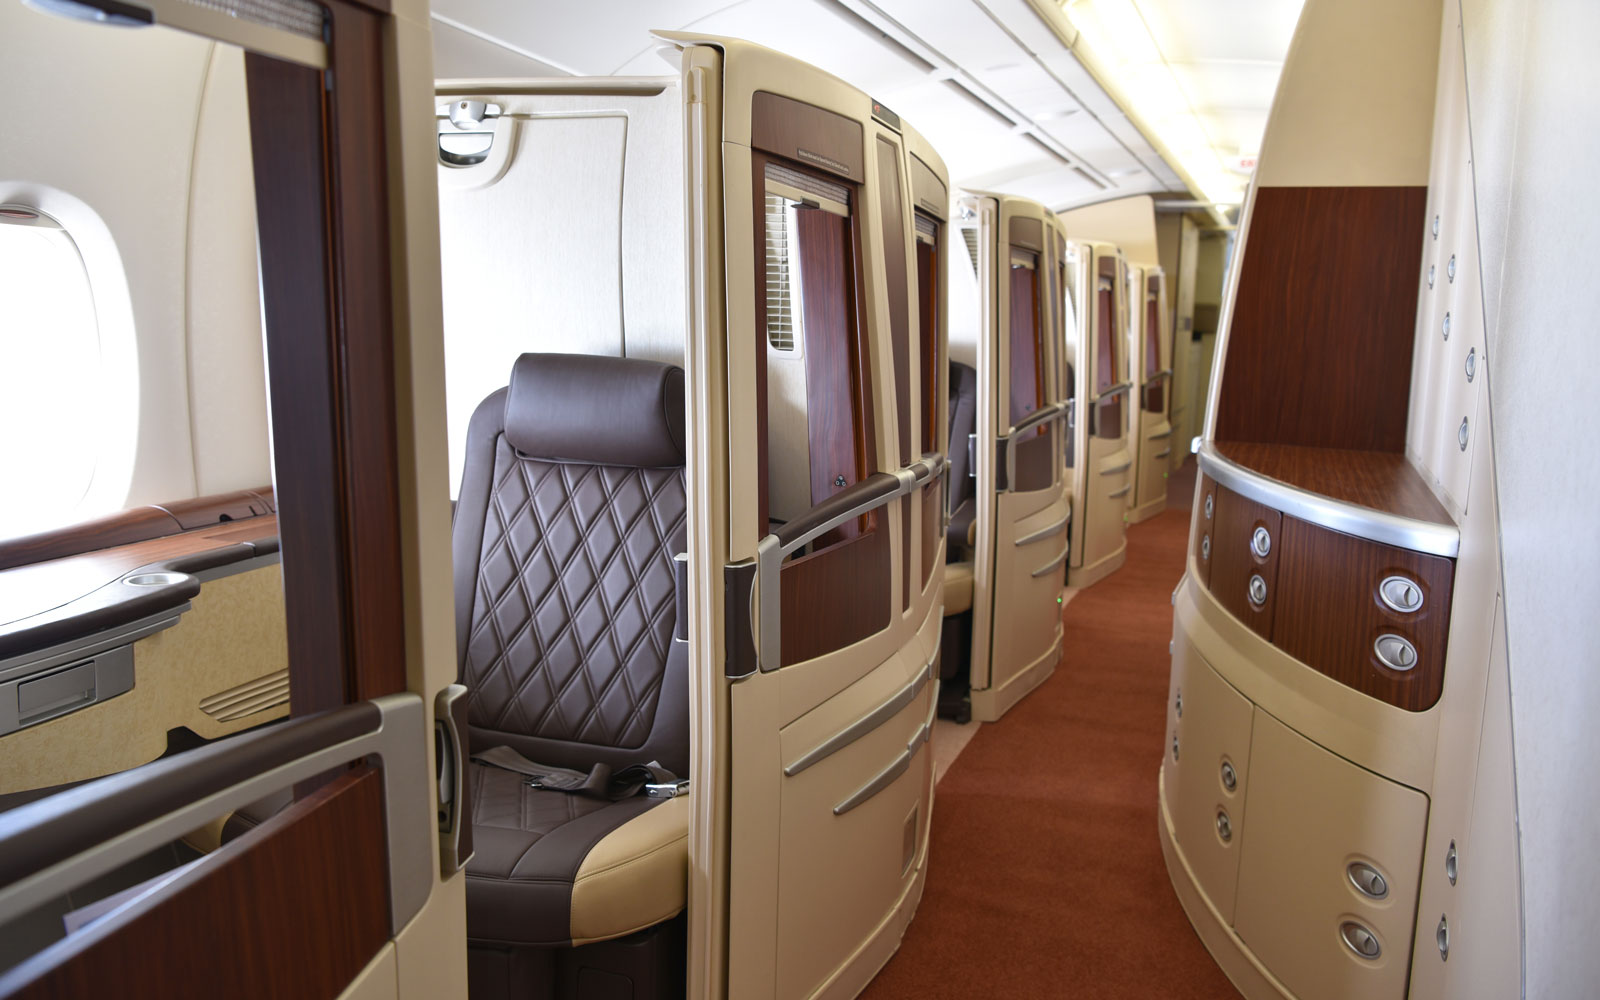 A look at the first class suites featured onboard Hi Fly's A380 aircraft.